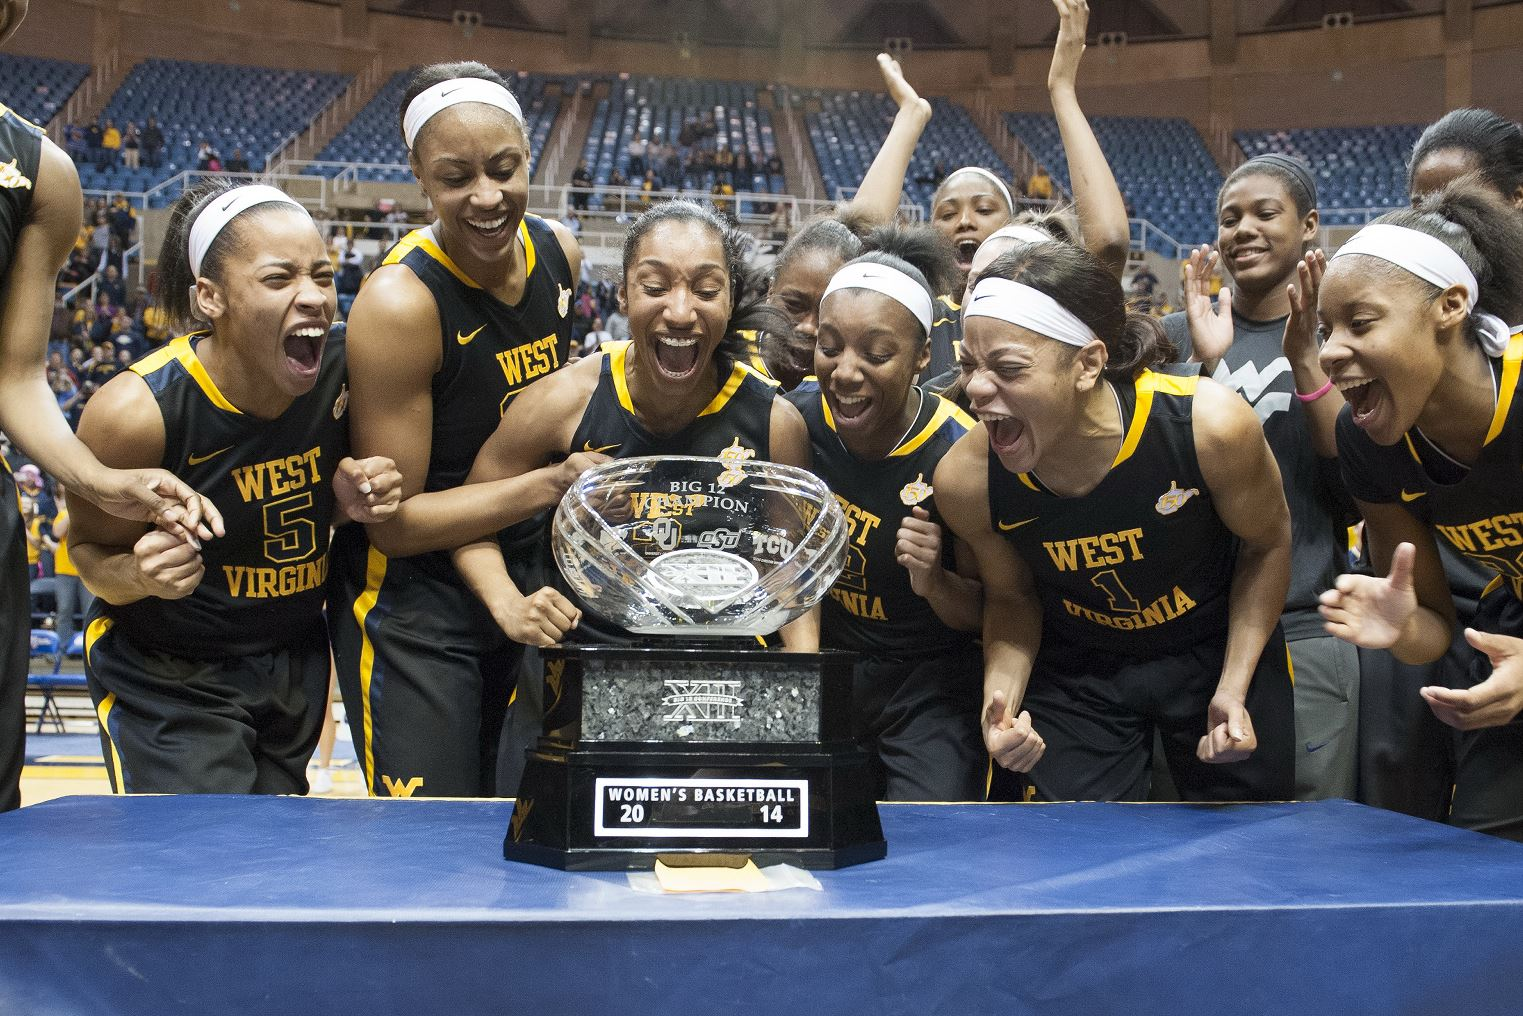 2014 West Virginia women's basketball preview | Pittsburgh ...